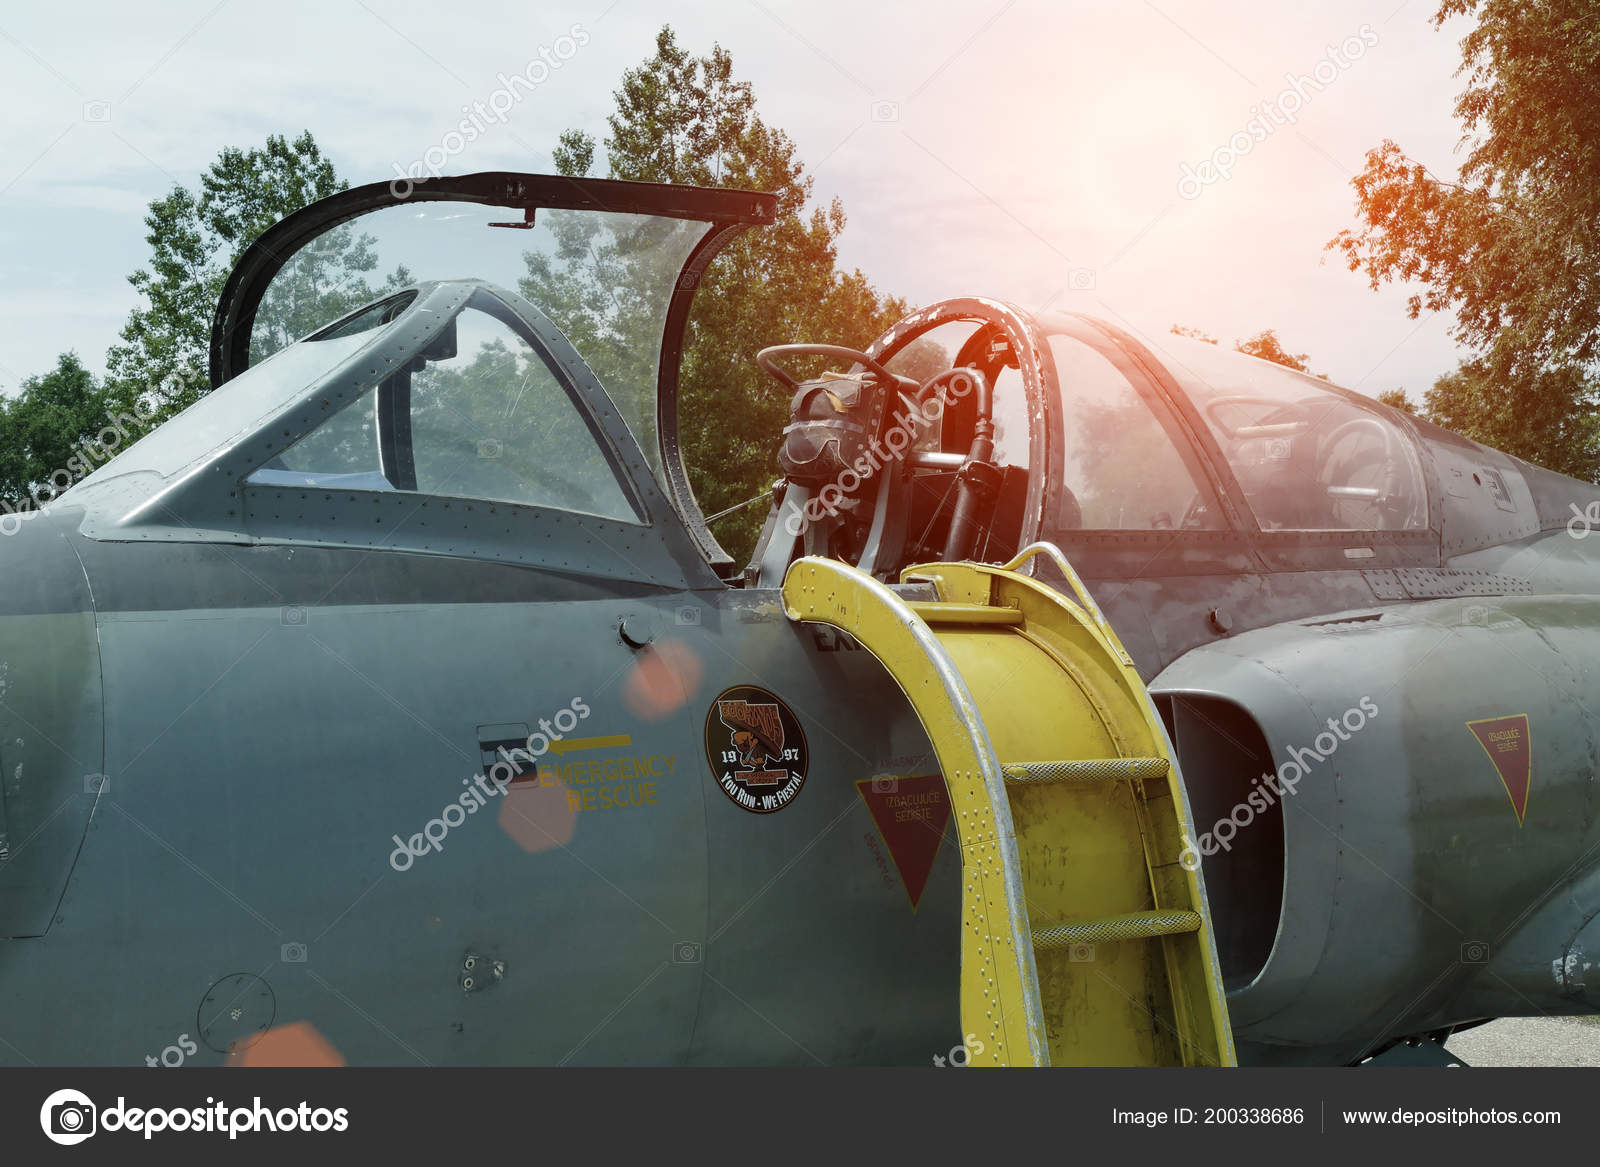 Ecka Serbia 26Th May 2018 Military Jet Plane Pilot Training